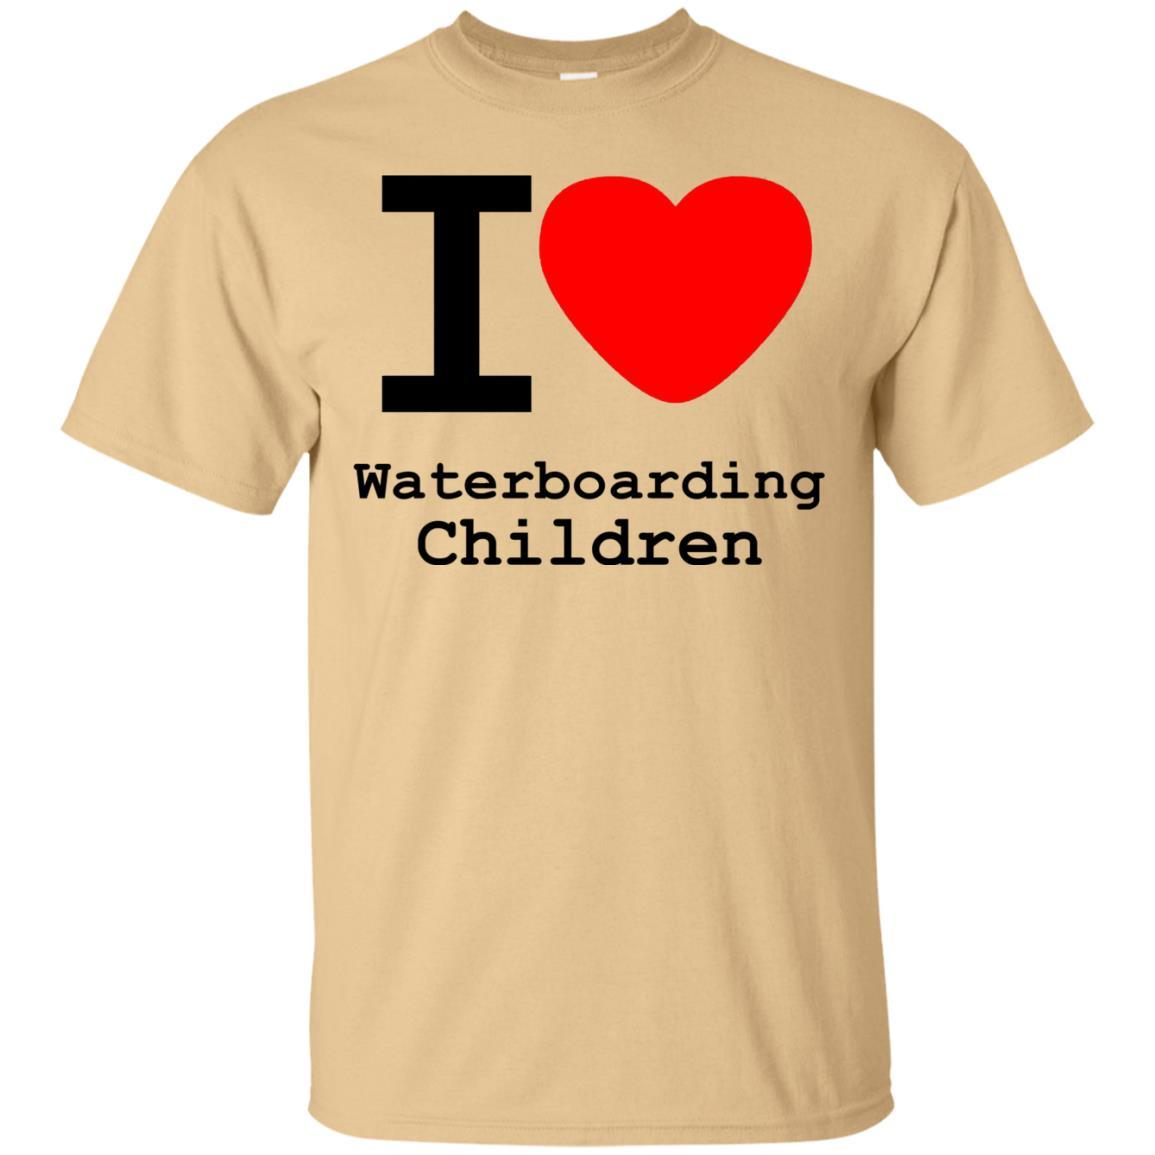 I love Waterboarding Children T-Shirt Vegas Gold / 5XL